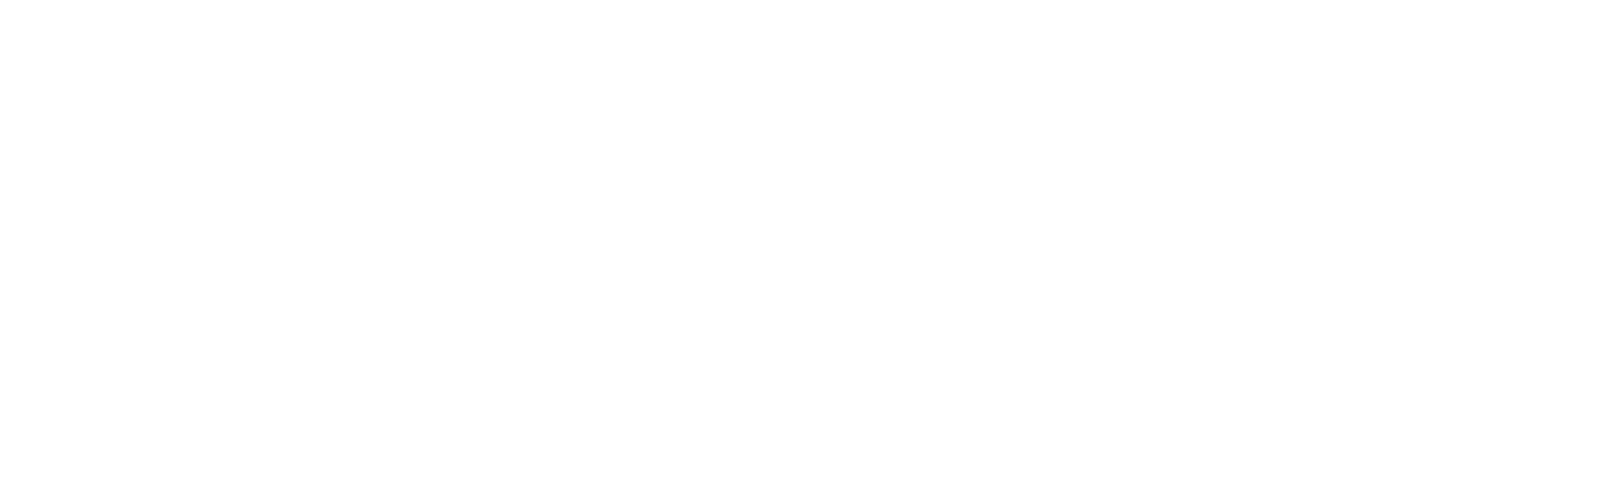 CASEY | Printing - Marketing - Packaging - Display Graphics